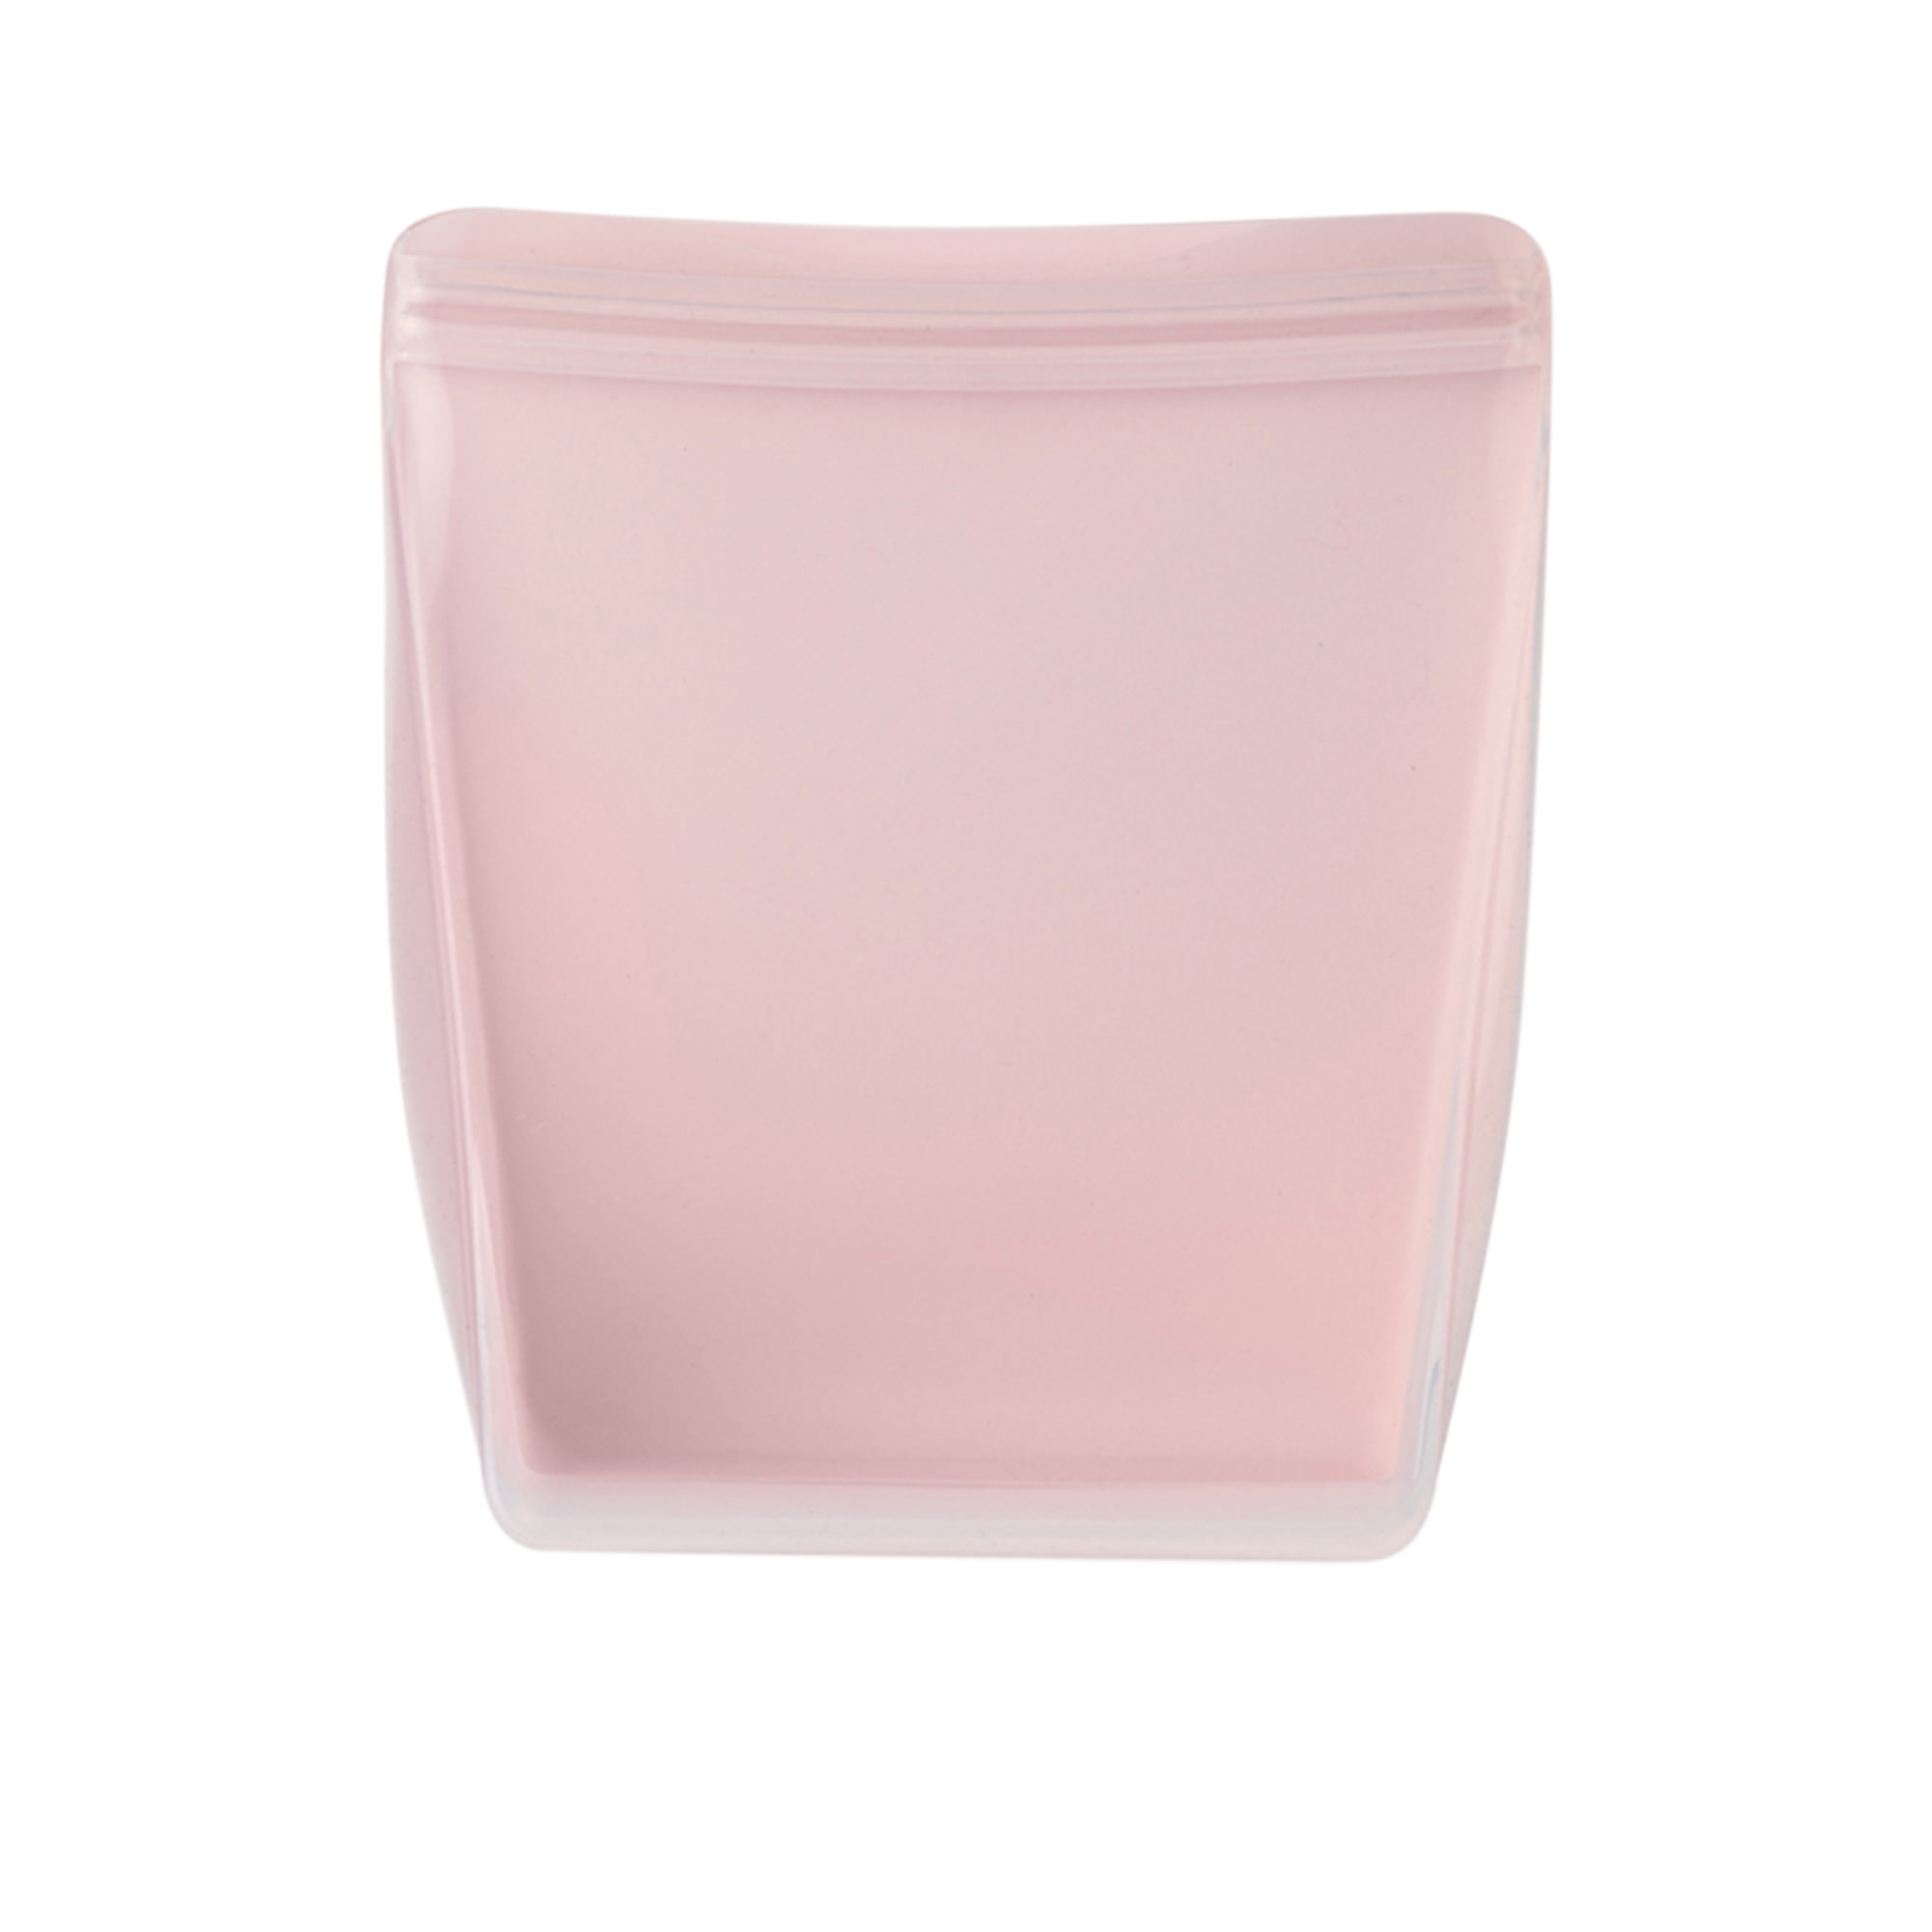 W&P Porter Reusable Stand Up Silicone Bag 1L Blush